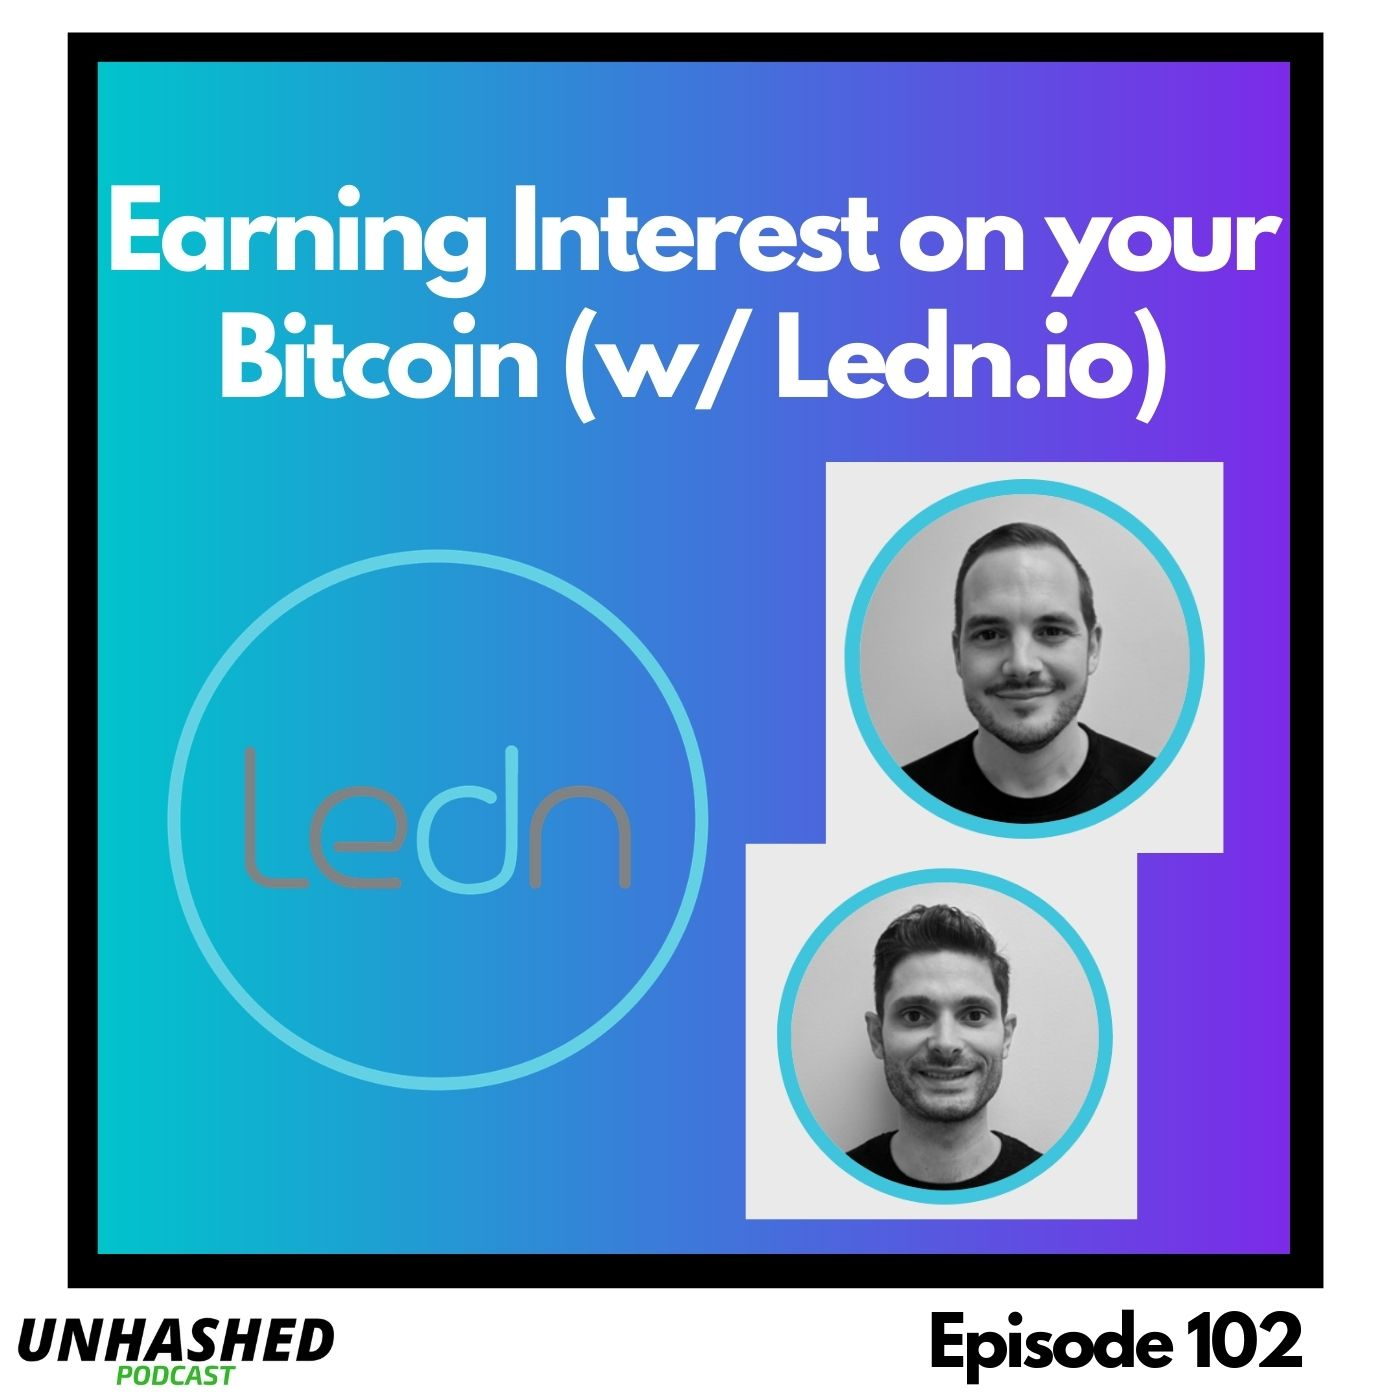 Earning Interest on your Bitcoin (w/ Ledn.io)